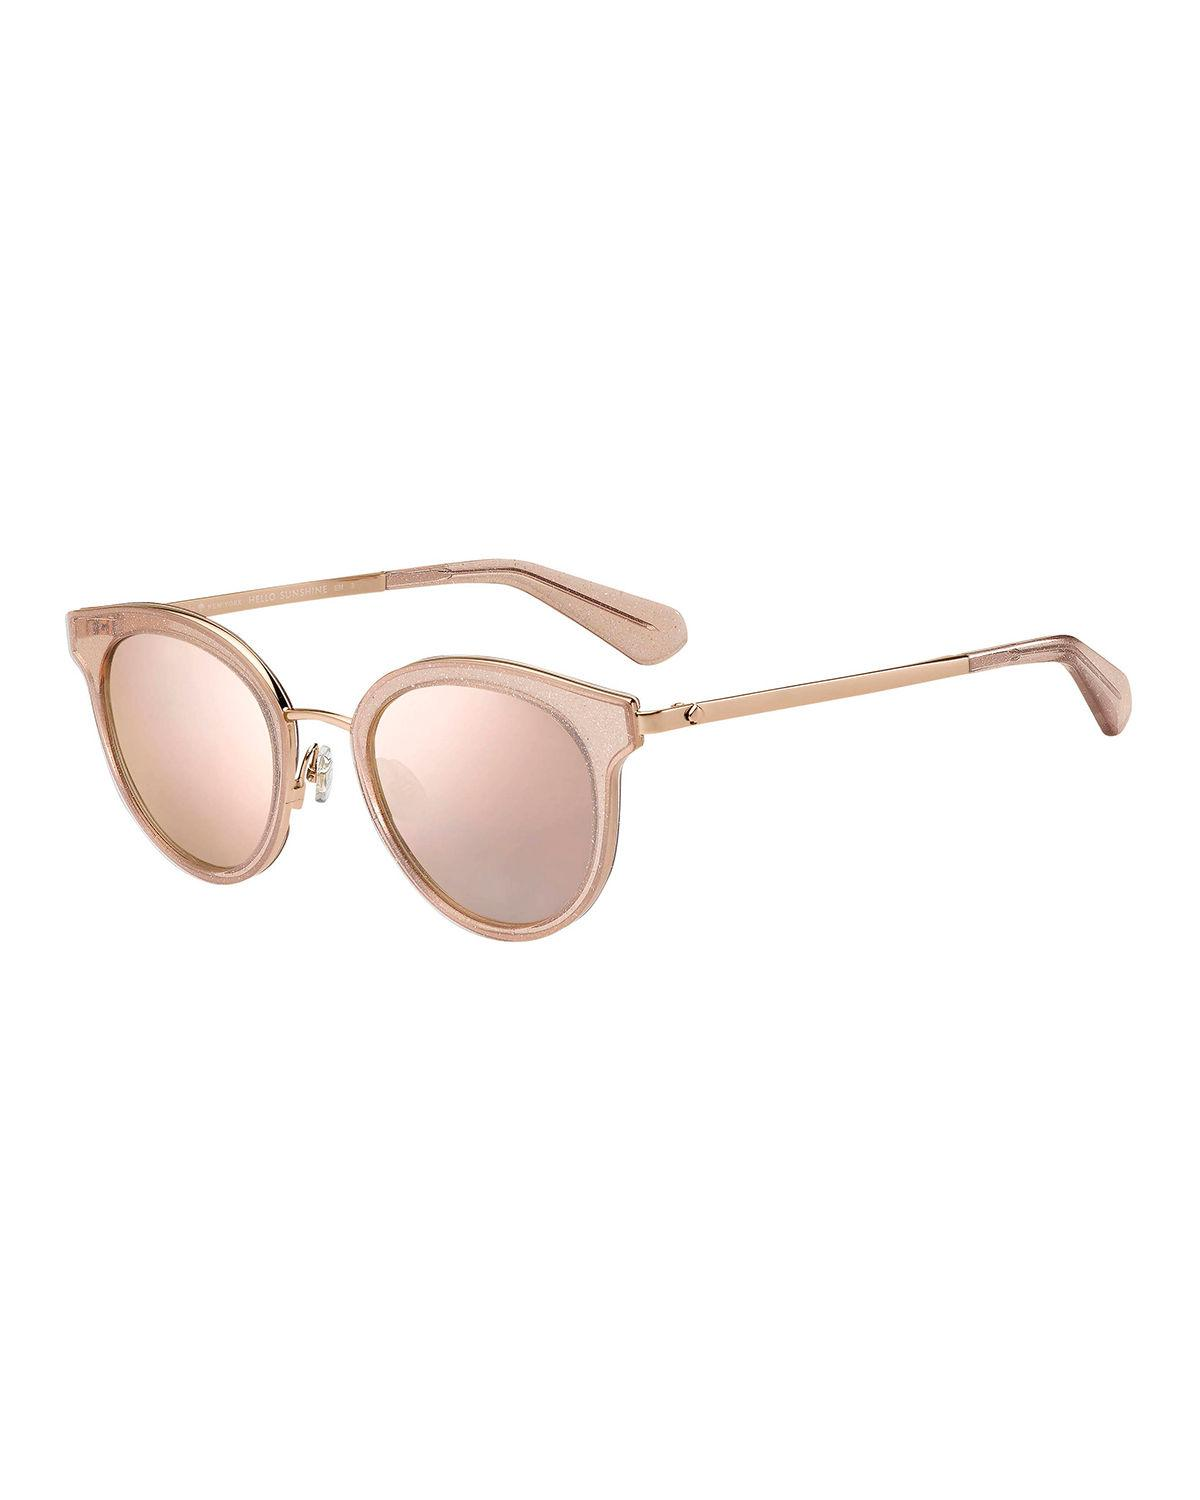 7d6aa23bff Lyst - Kate Spade Lisannefs Round Mirrored Sunglasses in Pink